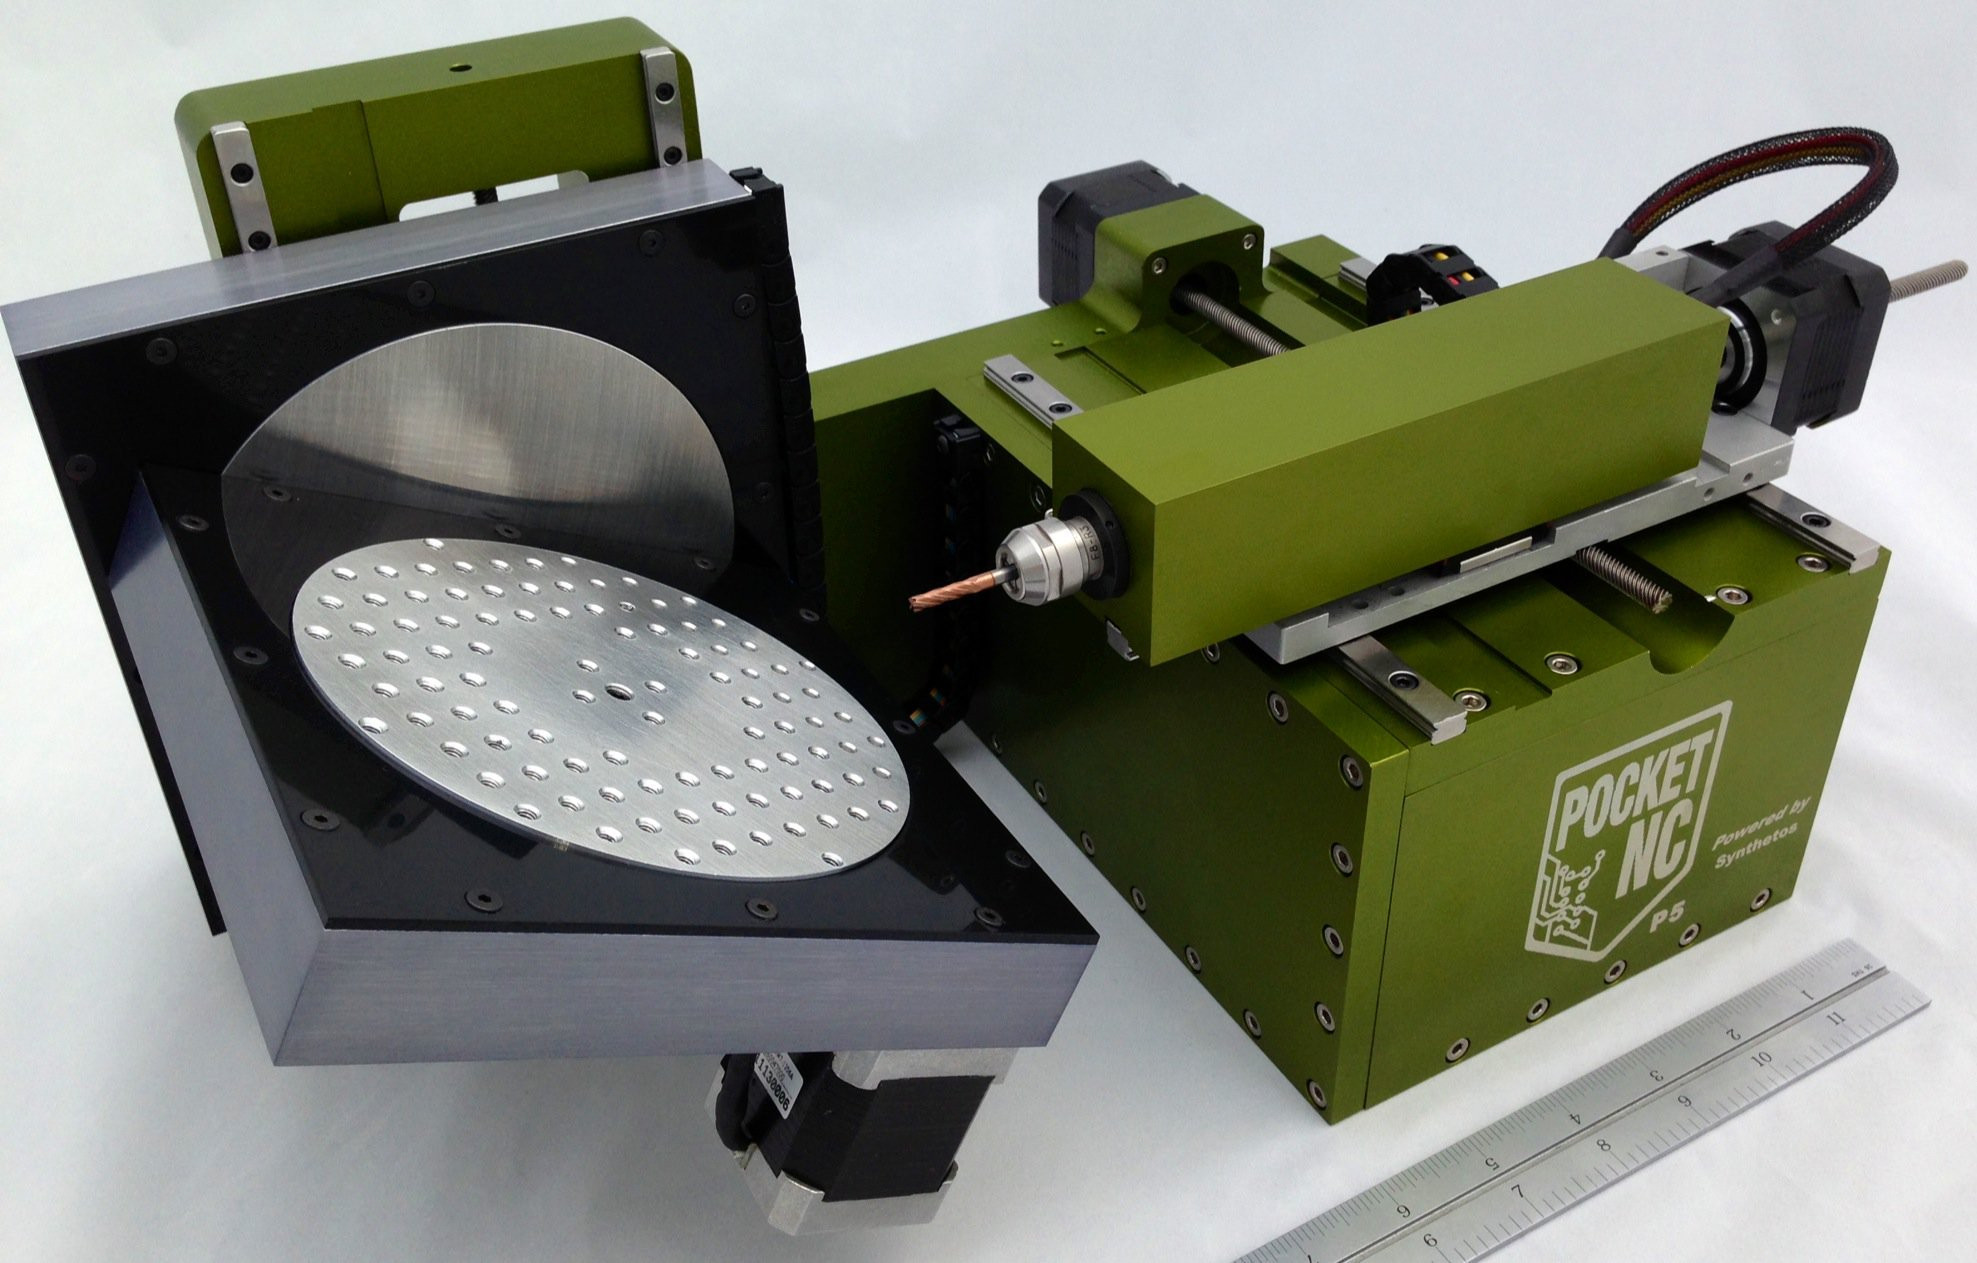 Best ideas about DIY 5 Axis Cnc . Save or Pin PocketNC an Affordable Five Axis CNC Now.